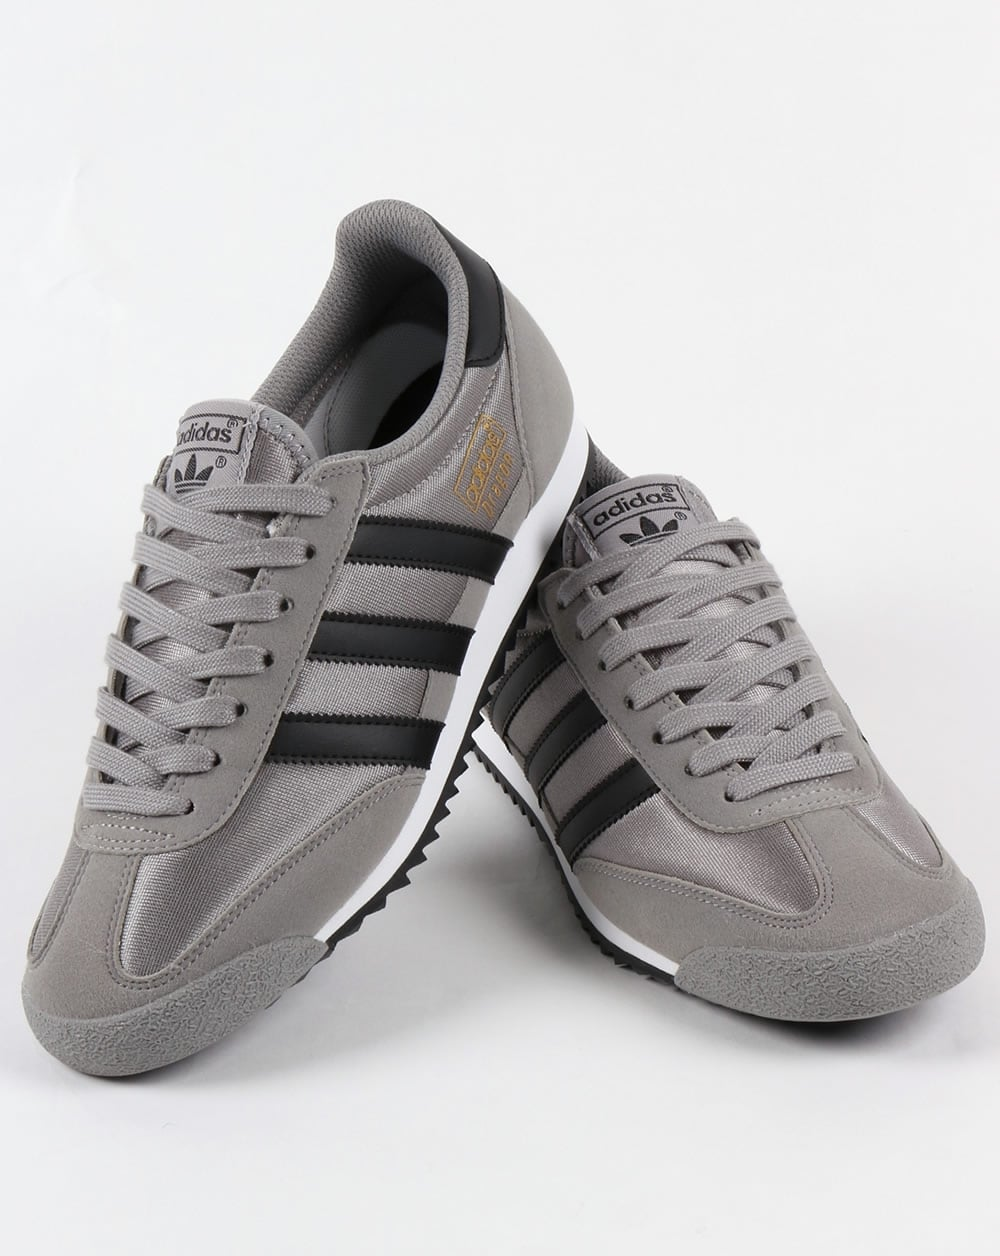 buy popular f7f01 b7fa8 Adidas Dragon OG Trainers Solid Grey Black